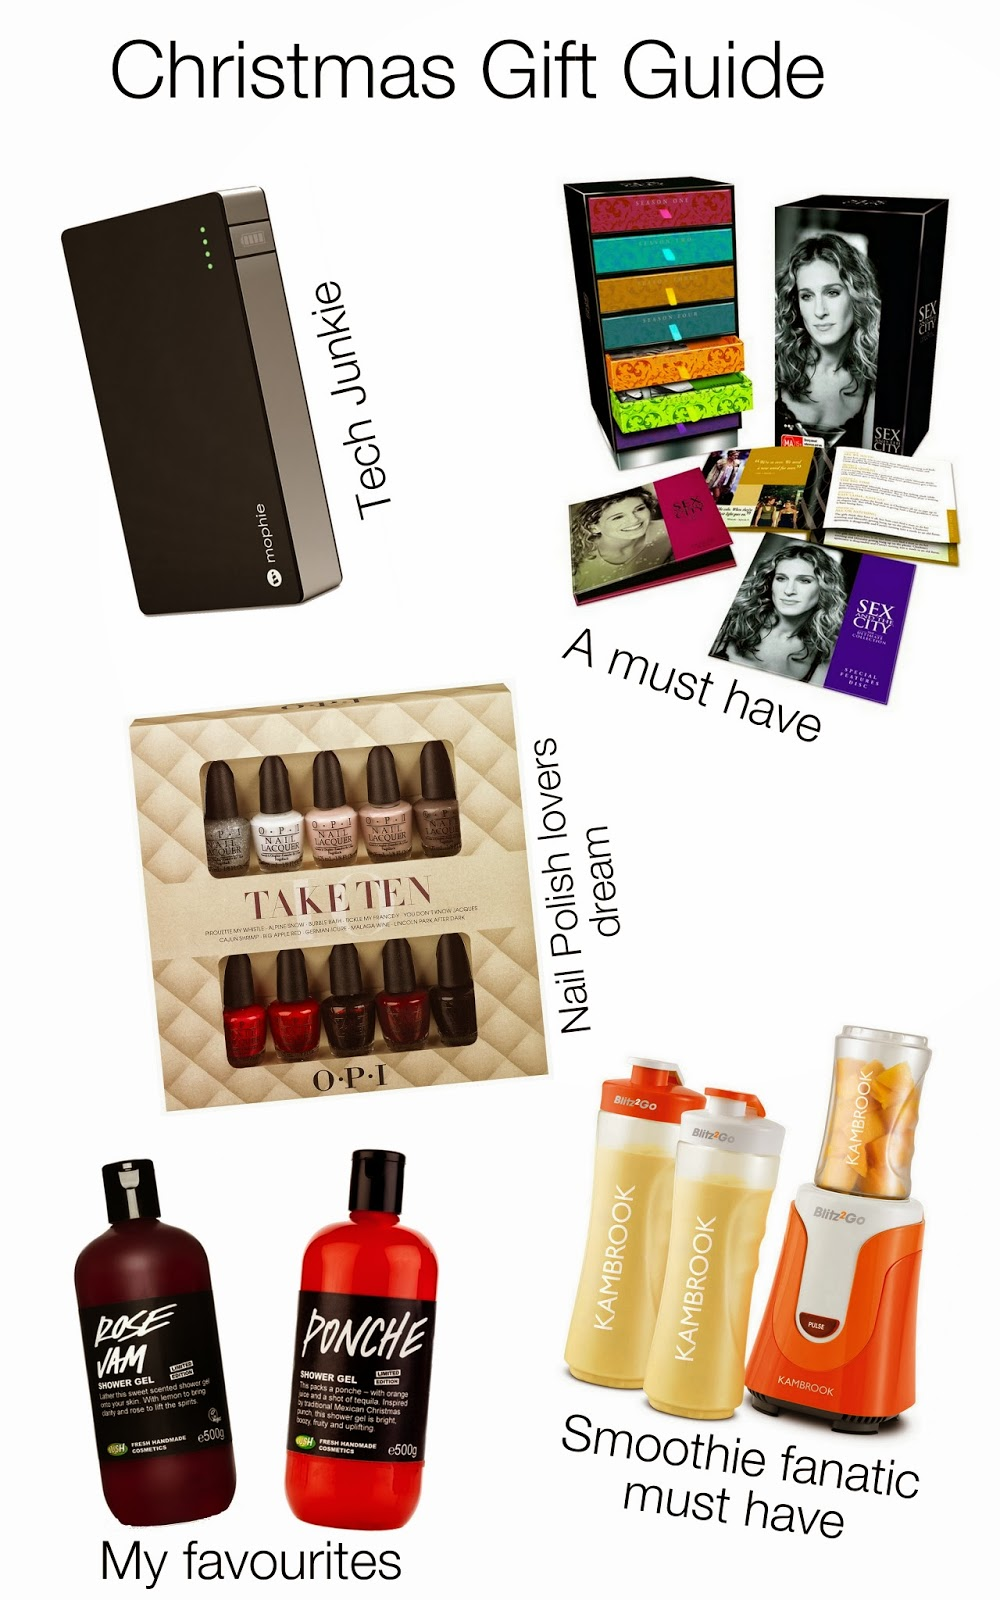 Christmas gift guide 2013, mophie juice pack, sex and the city box set, opi take ten, lush shower gel, kambrook blitz2go